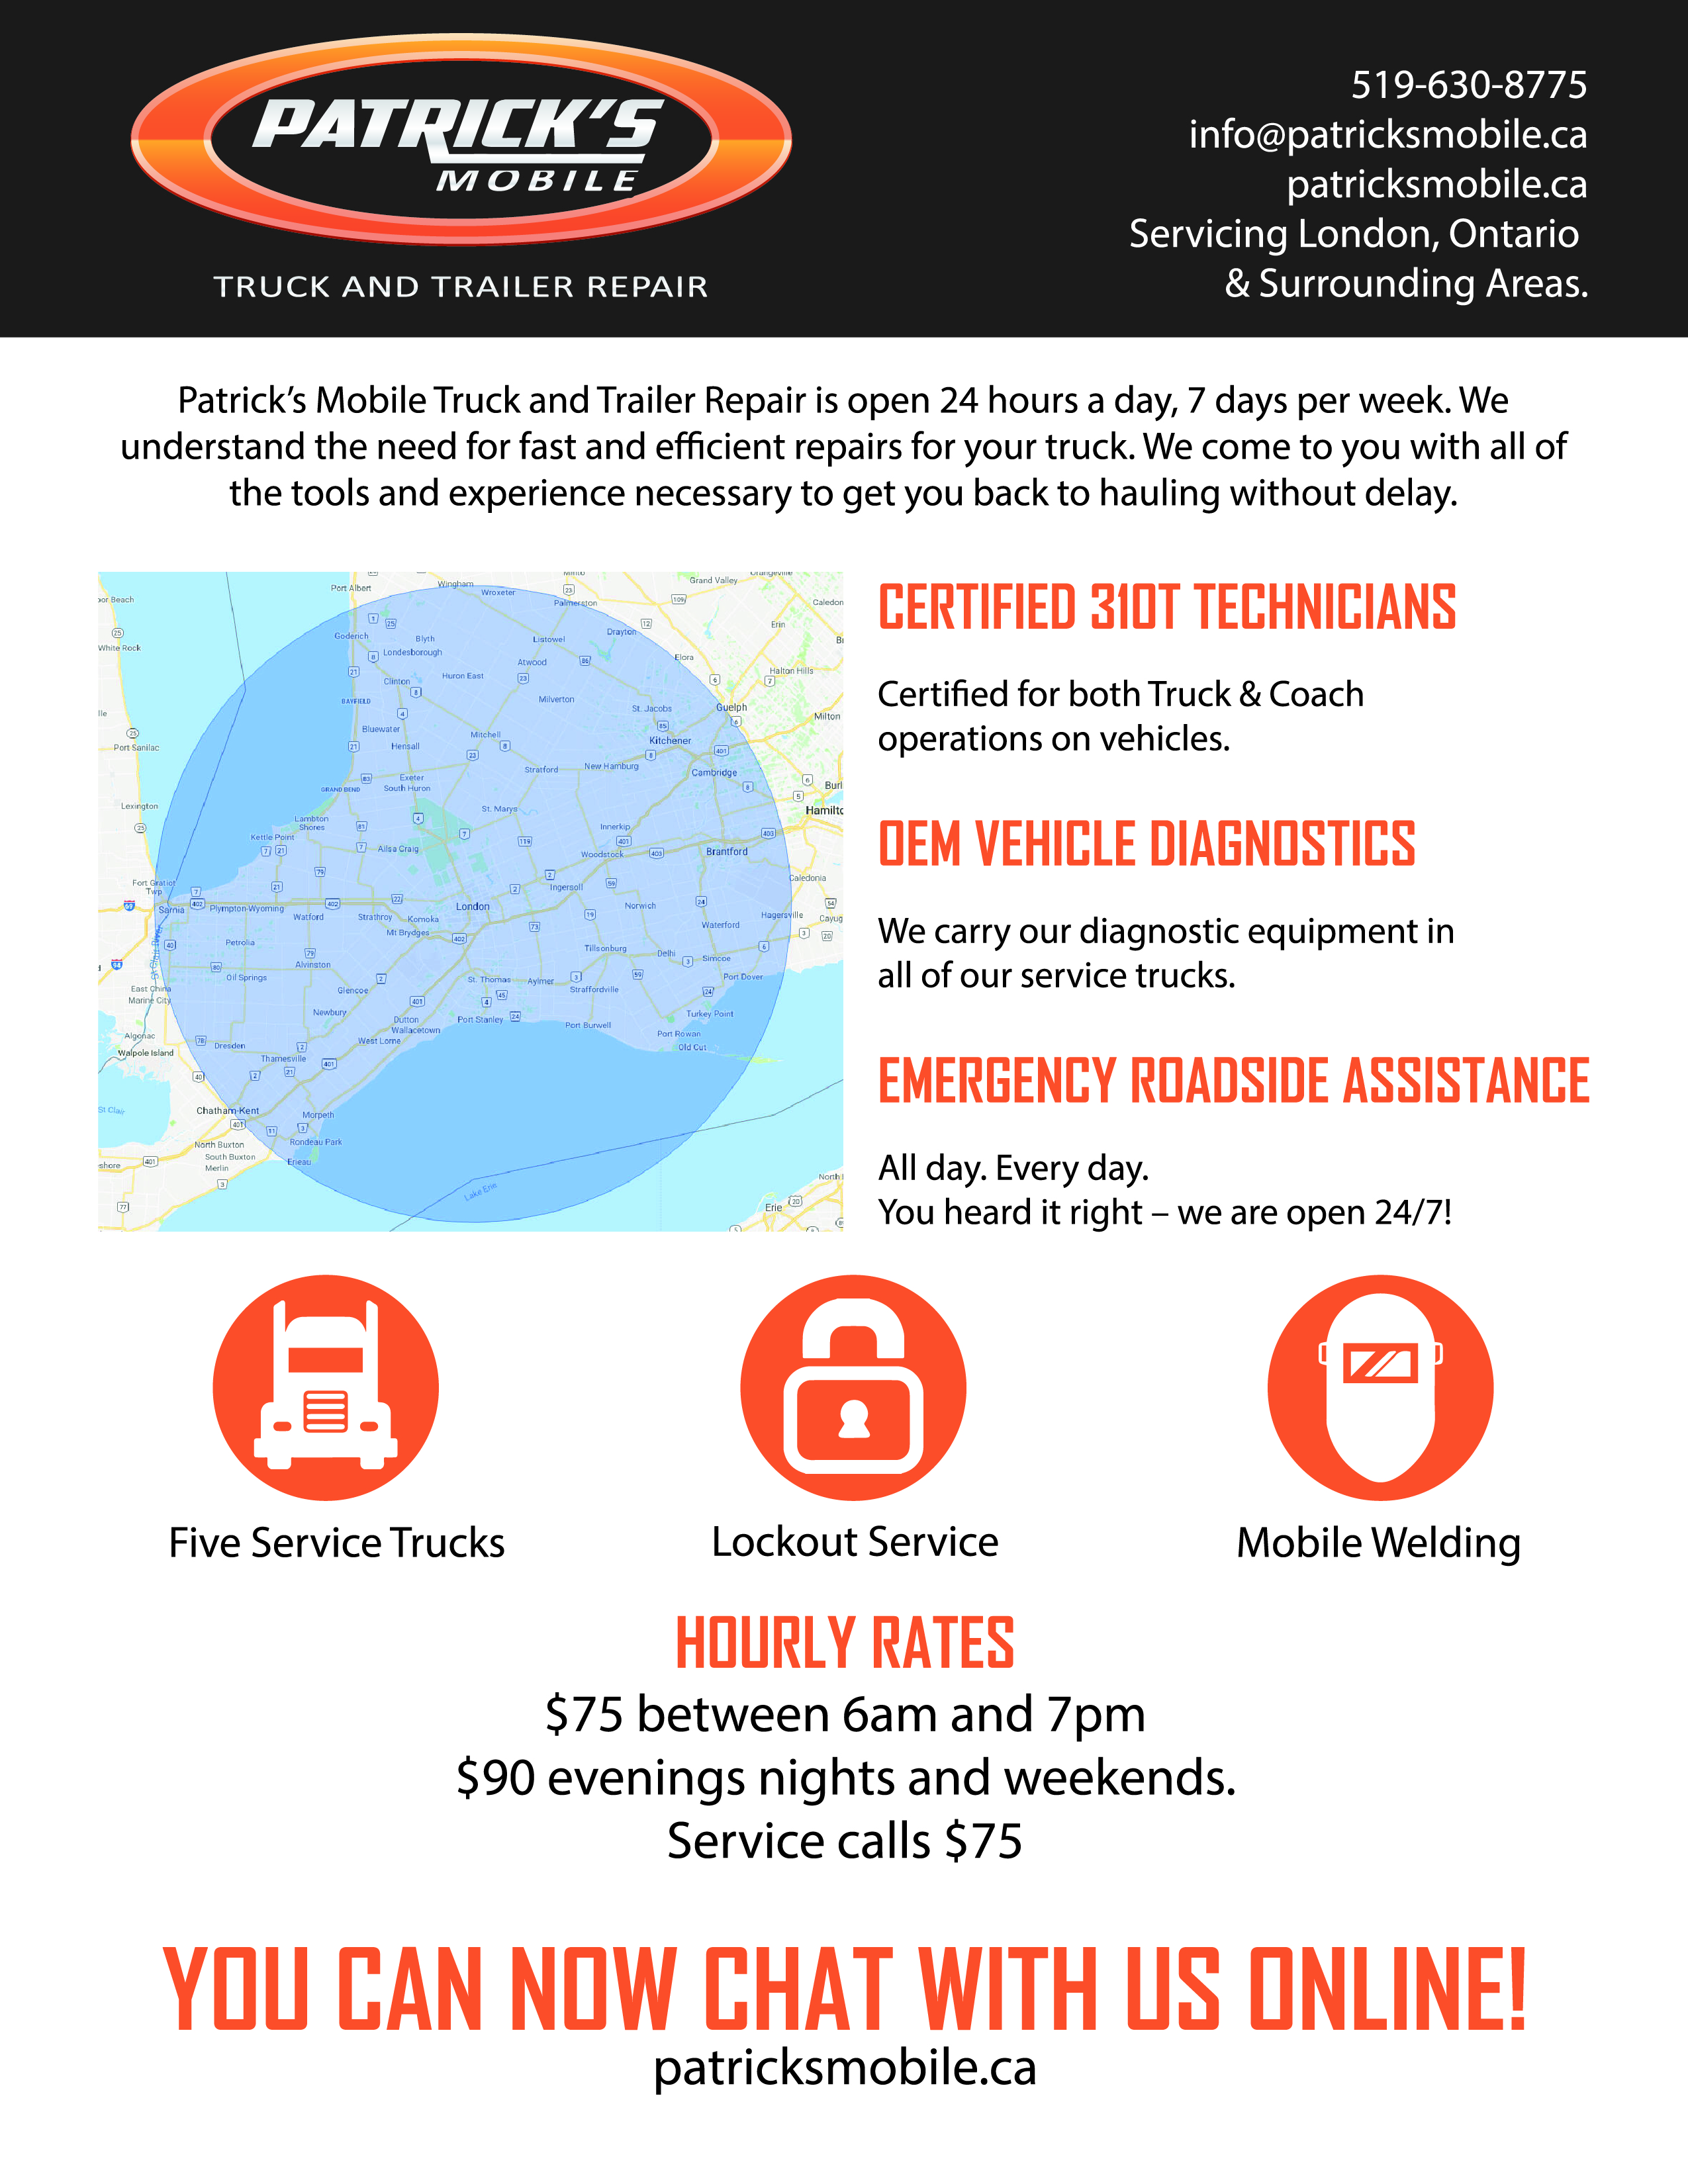 Patrick's Mobile Flyer - SlyFox Web Design and Marketing